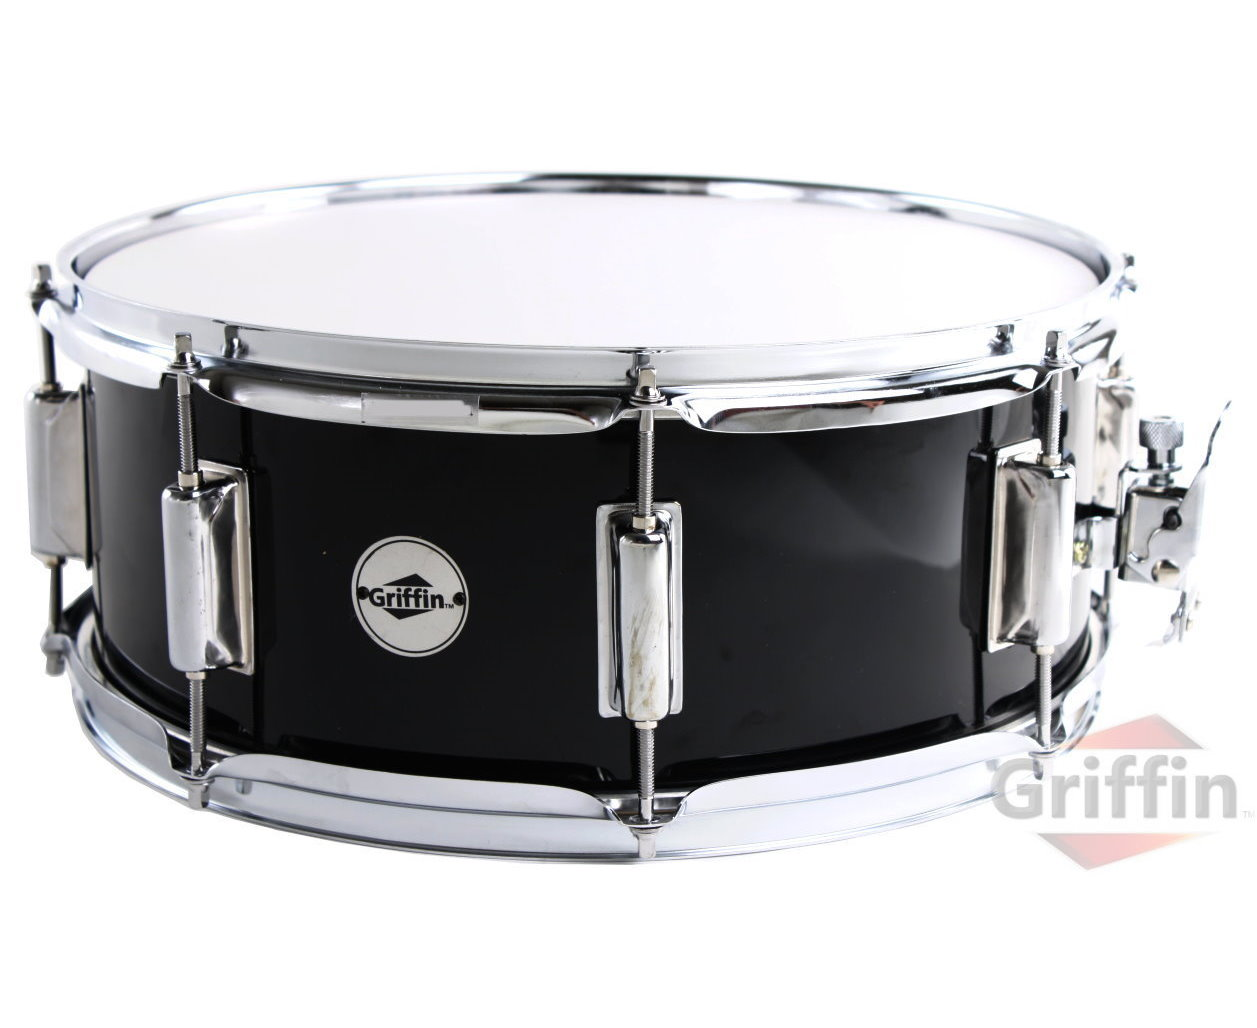 """Griffin Snare Drum Poplar Wood Shell 14"""" x 5.5"""" with Black PVC Glossy Finish... by Griffin"""